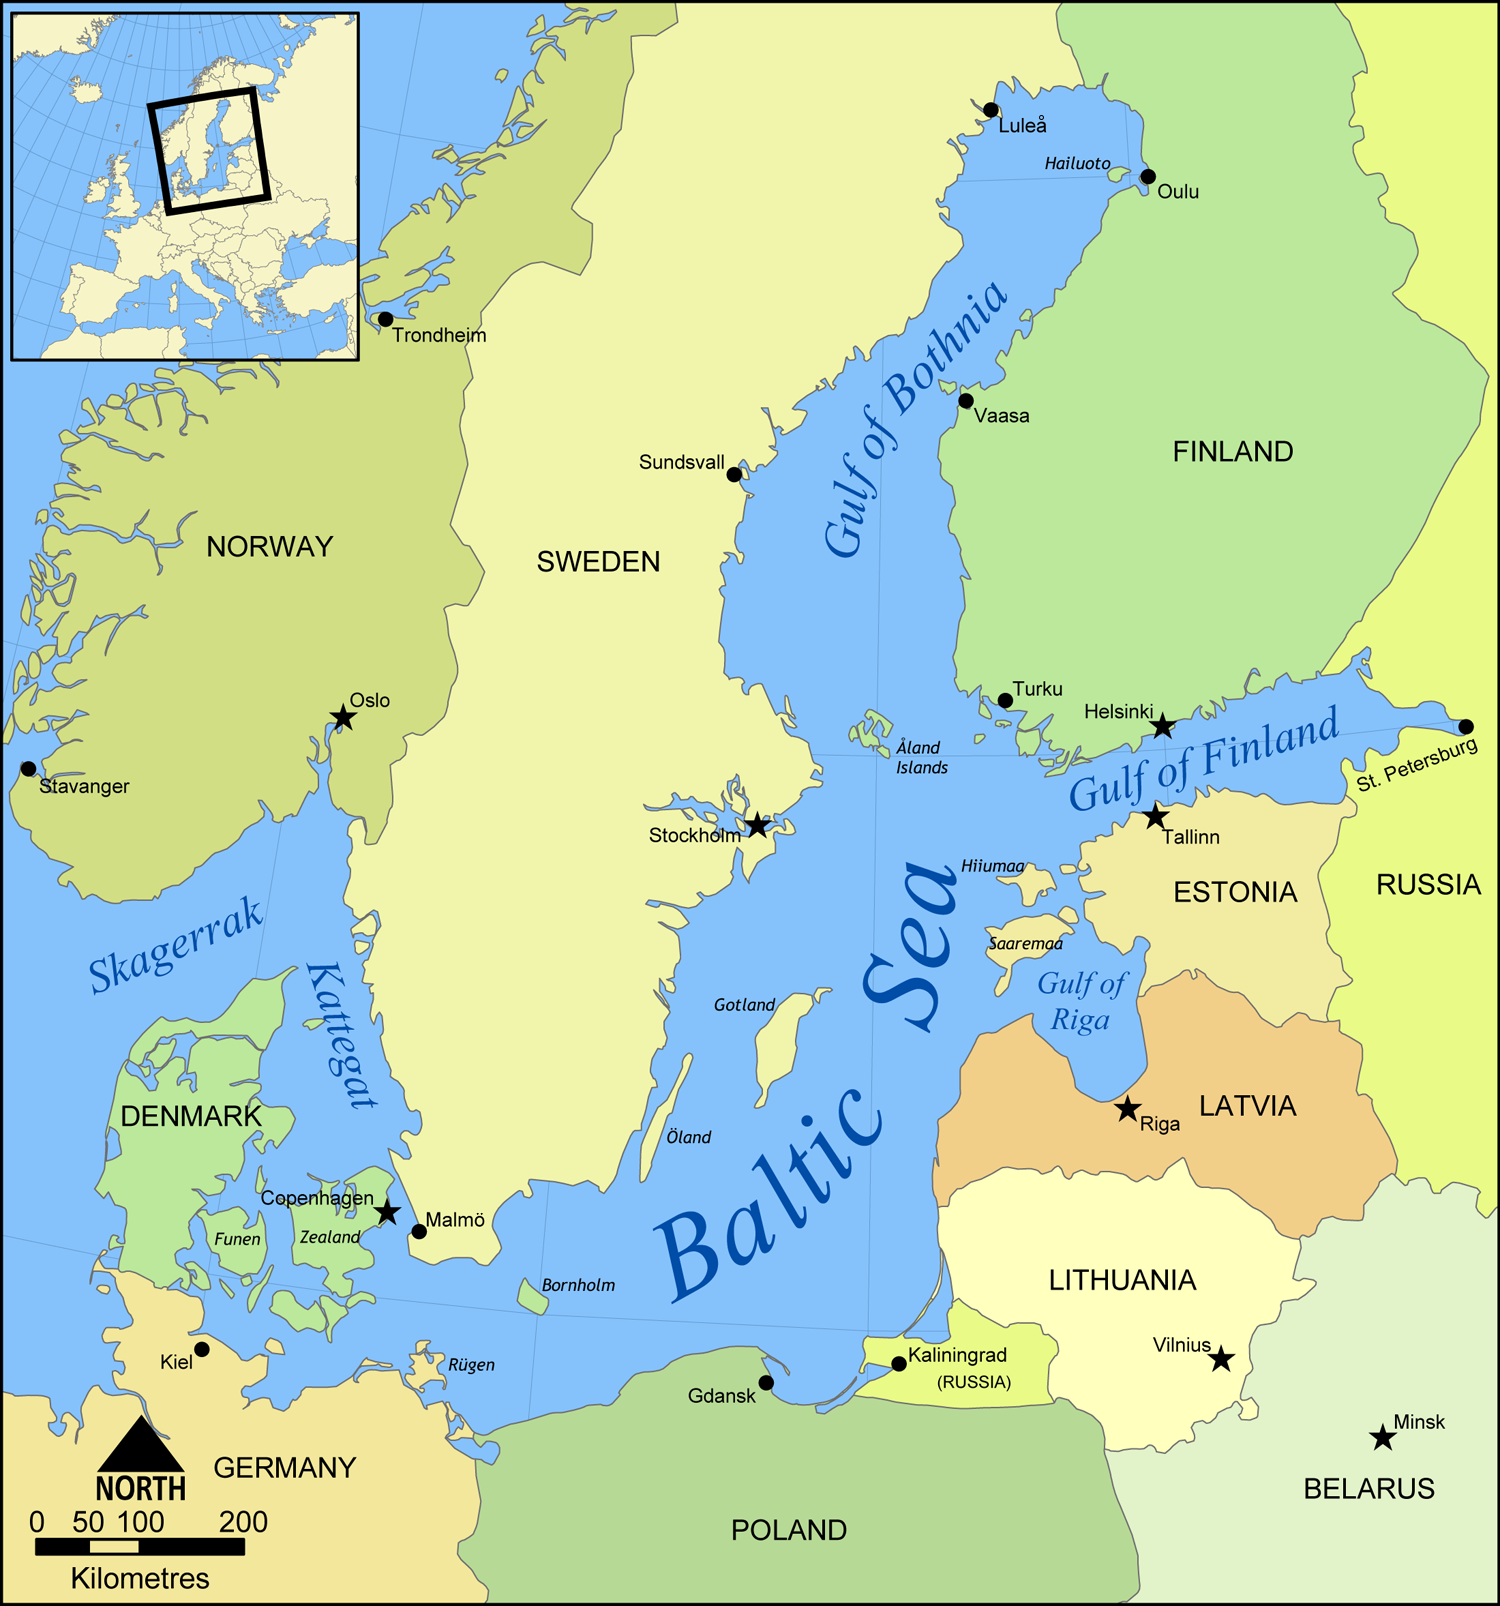 The Baltic Sea Region 2008